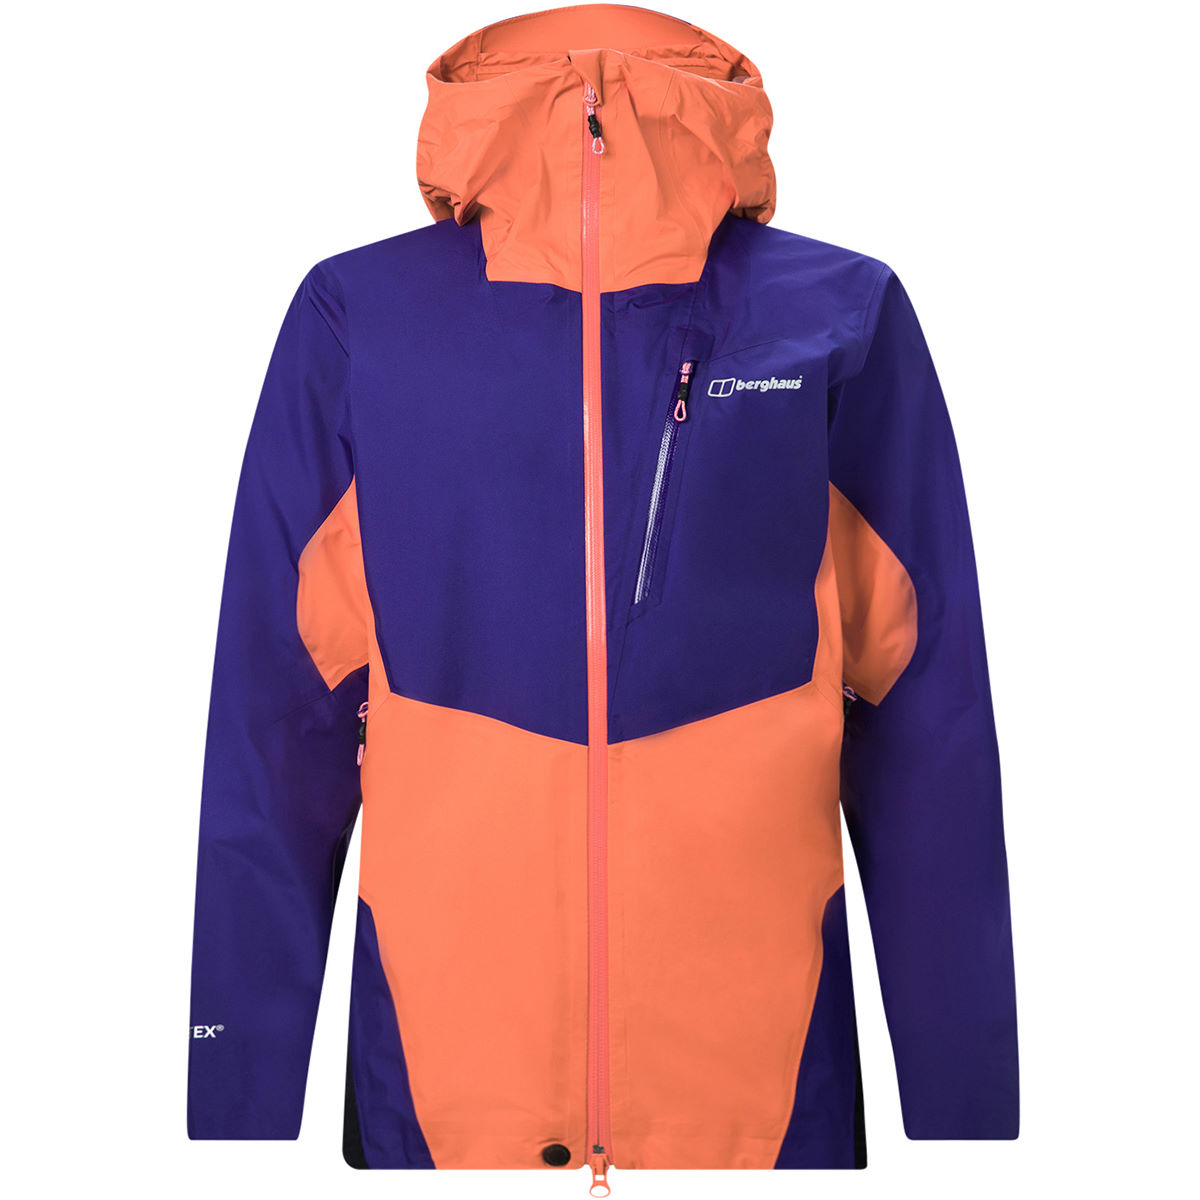 Berghaus Berghaus womens Changtse Waterproof Jacket   Jackets